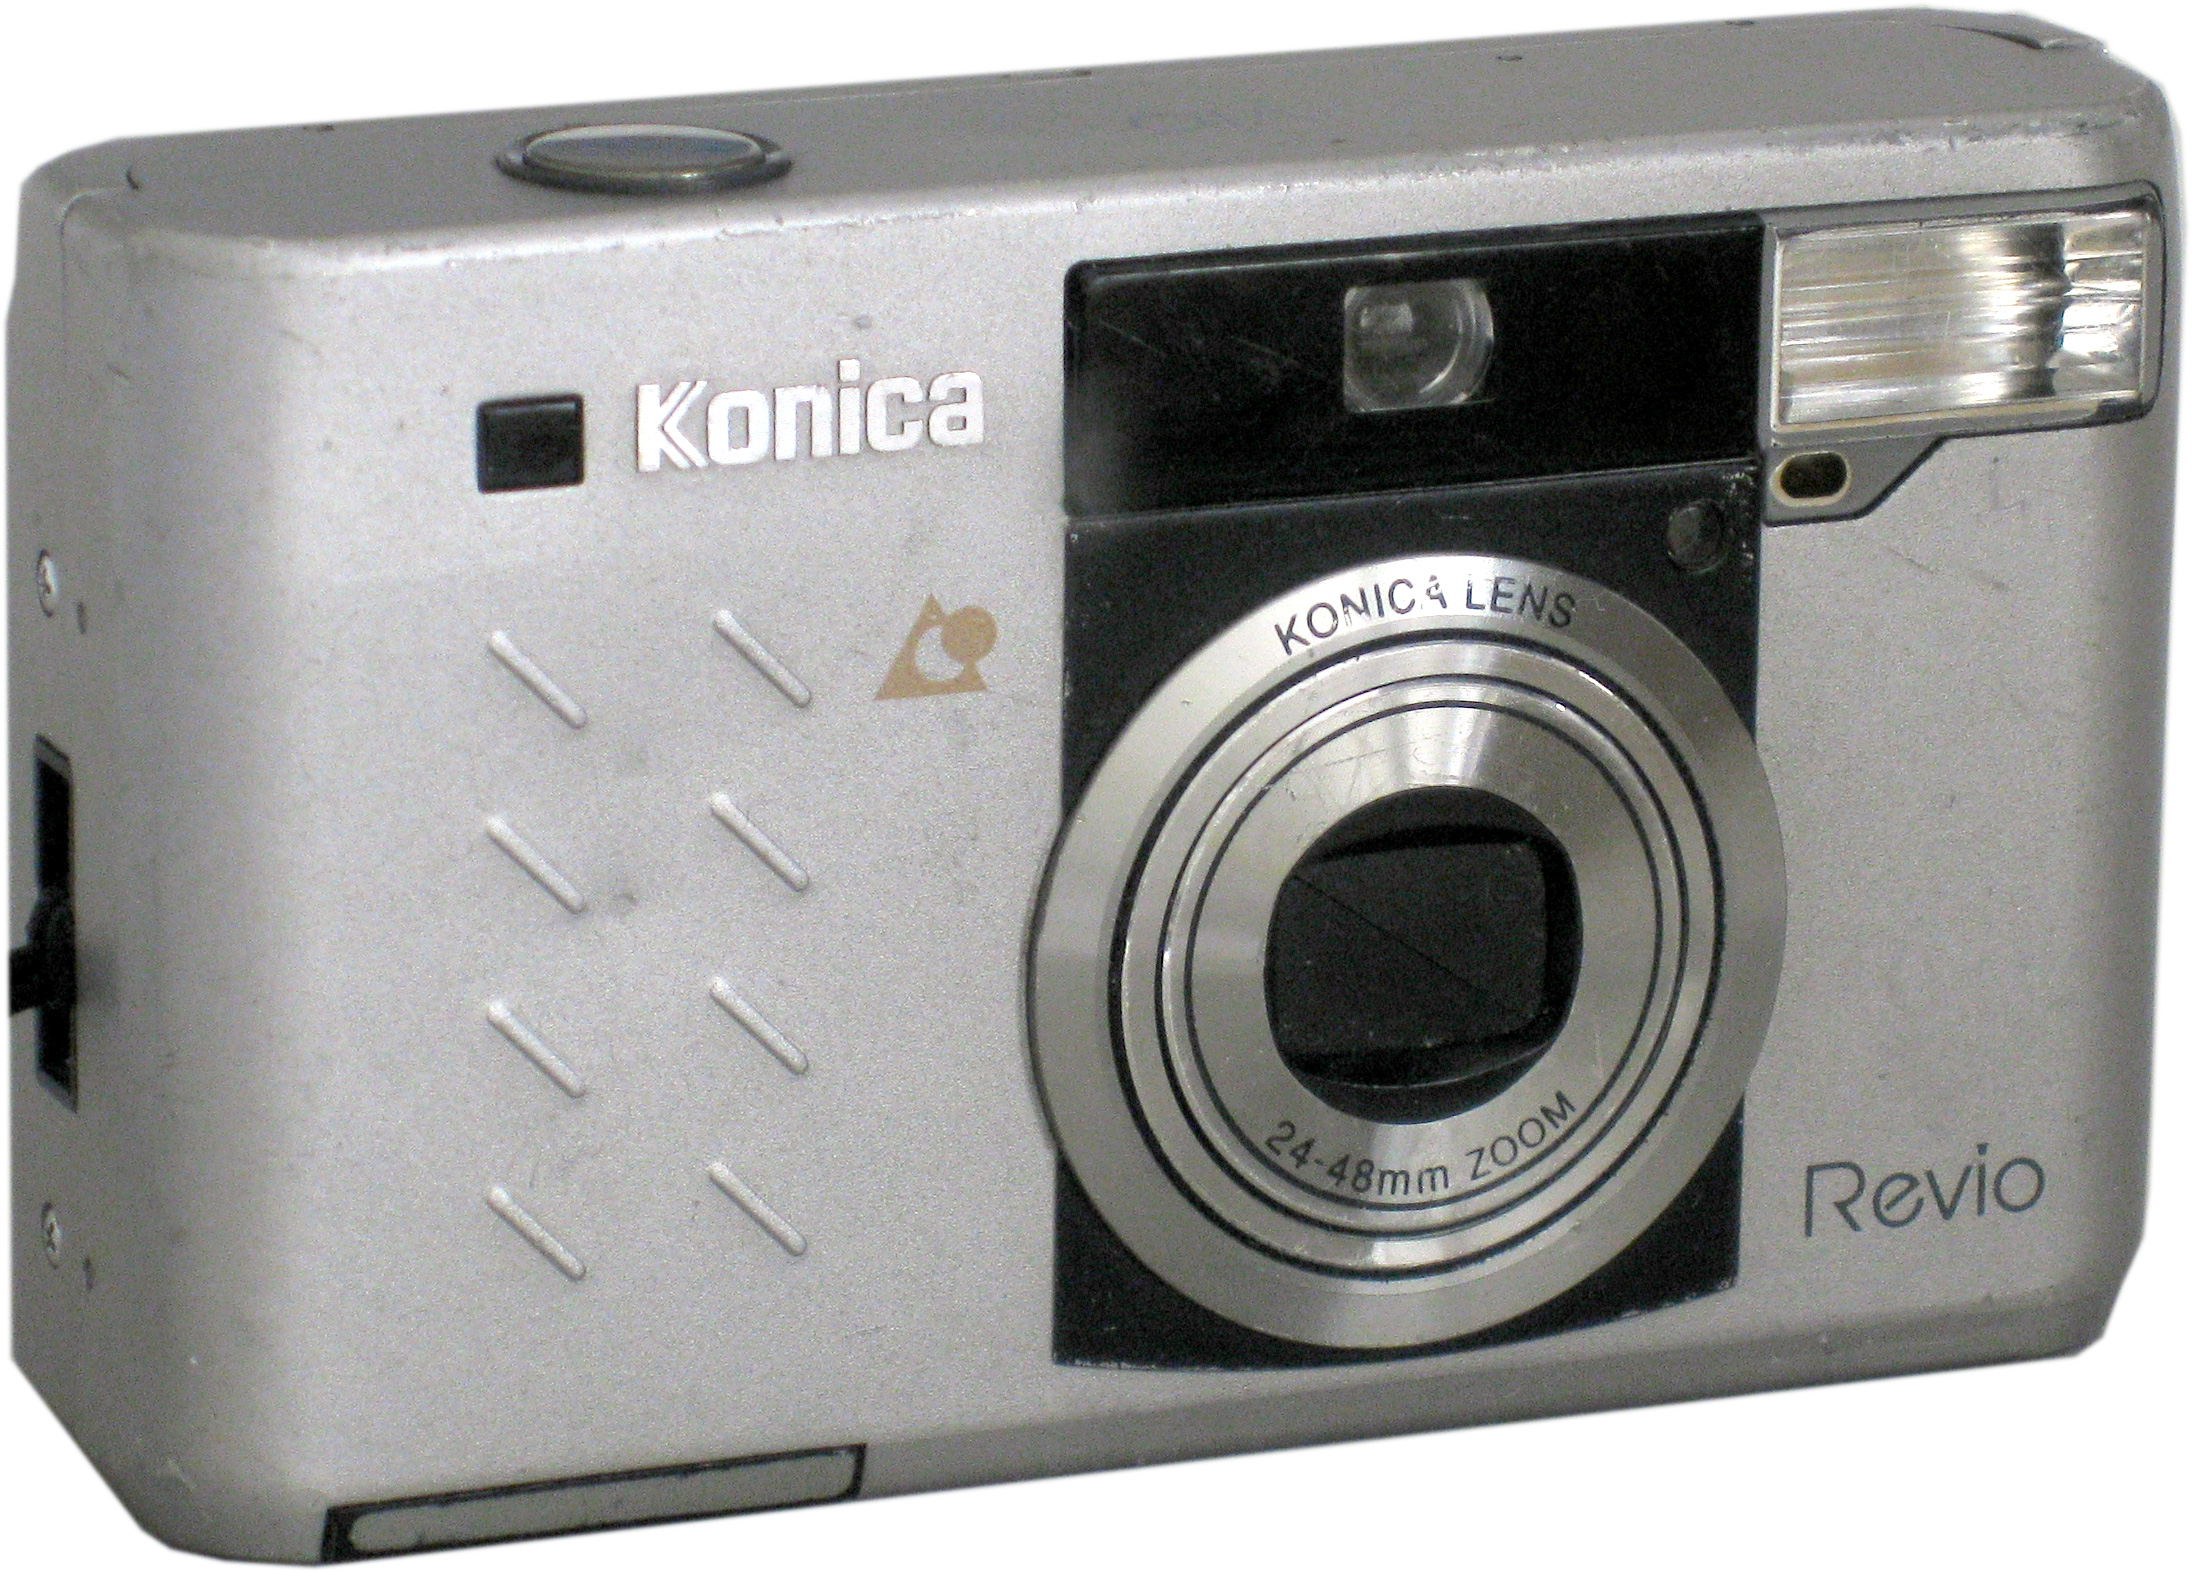 Konica Revio APS camera